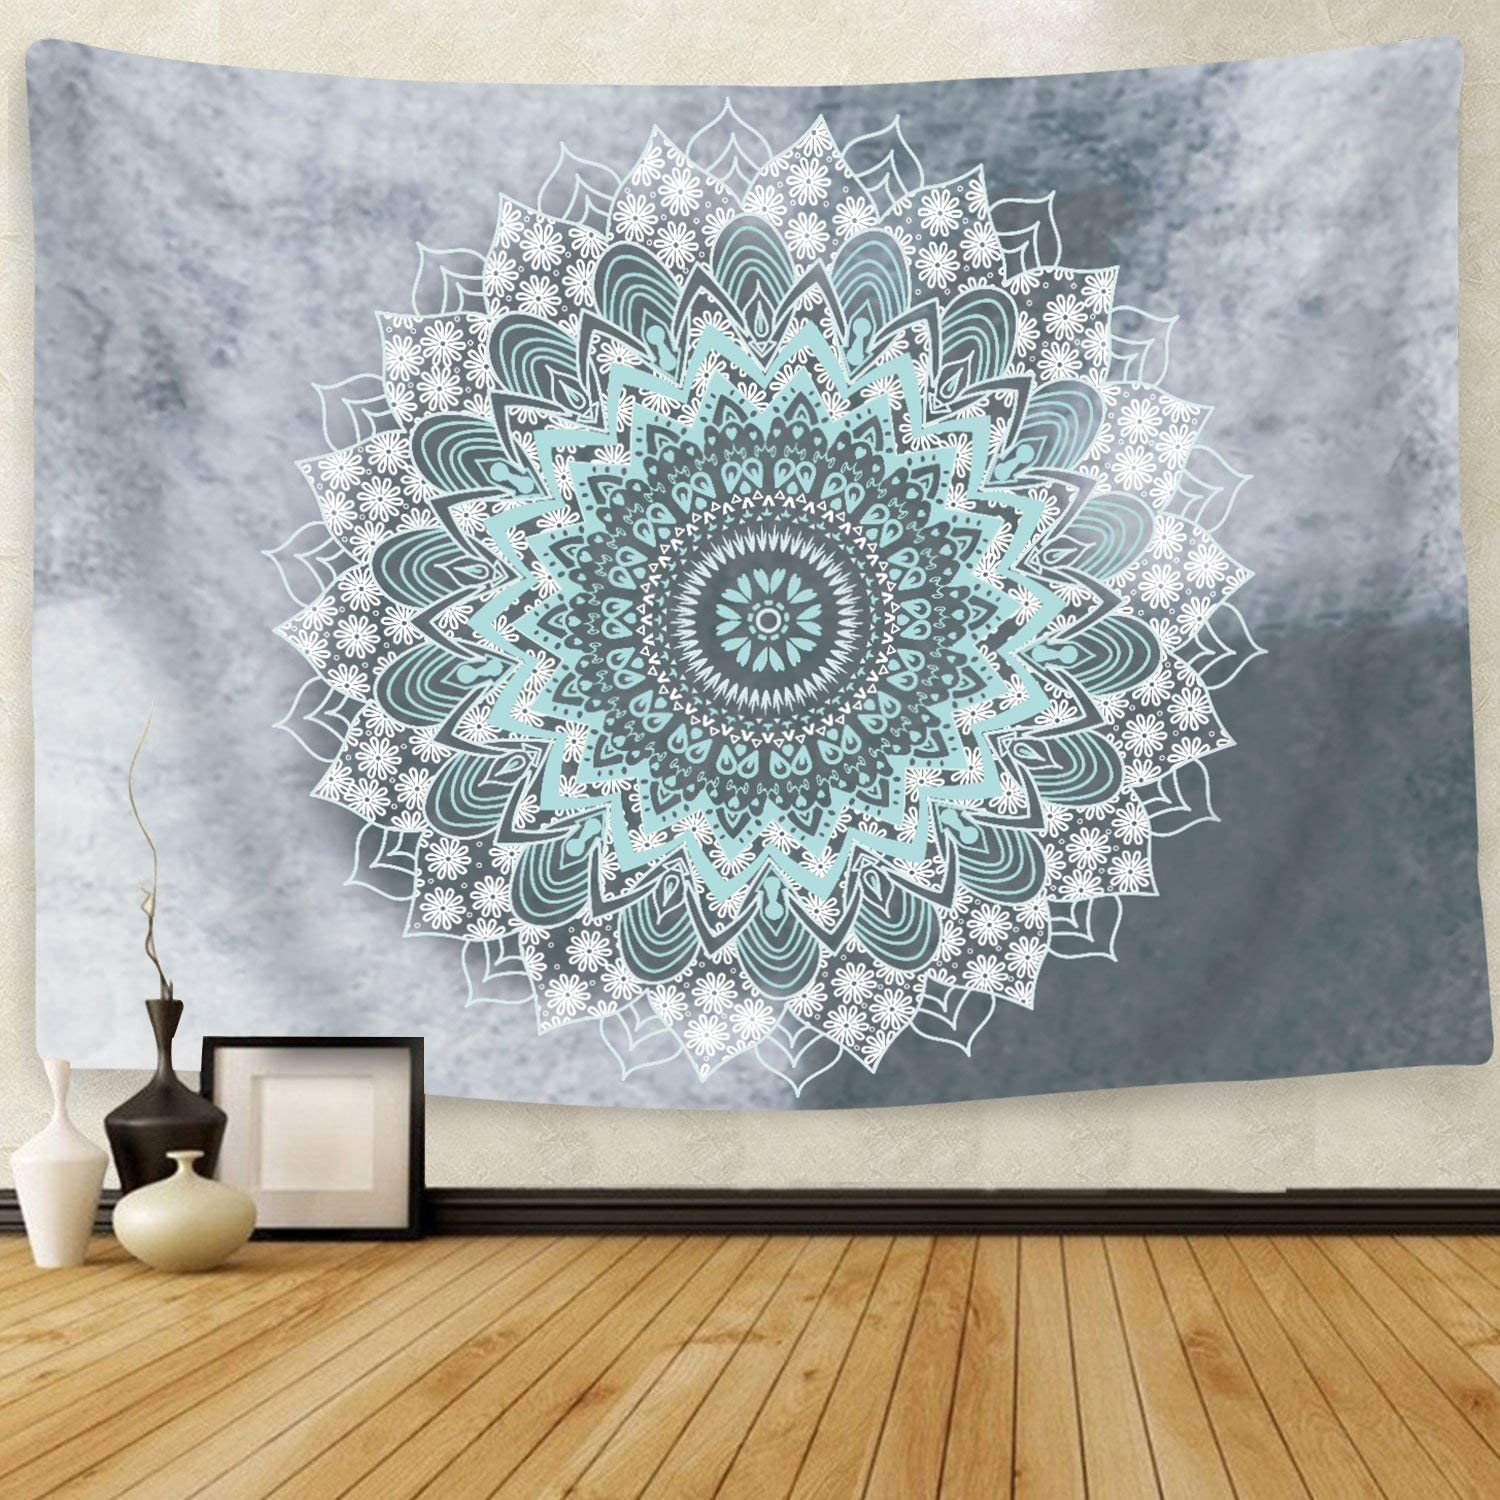 Cootime Mandala Tapestry, Hippie Bohemian Flower Psychedelic Indian Dorm Decor for Living Room Bedroom 59x59 Inches, Green